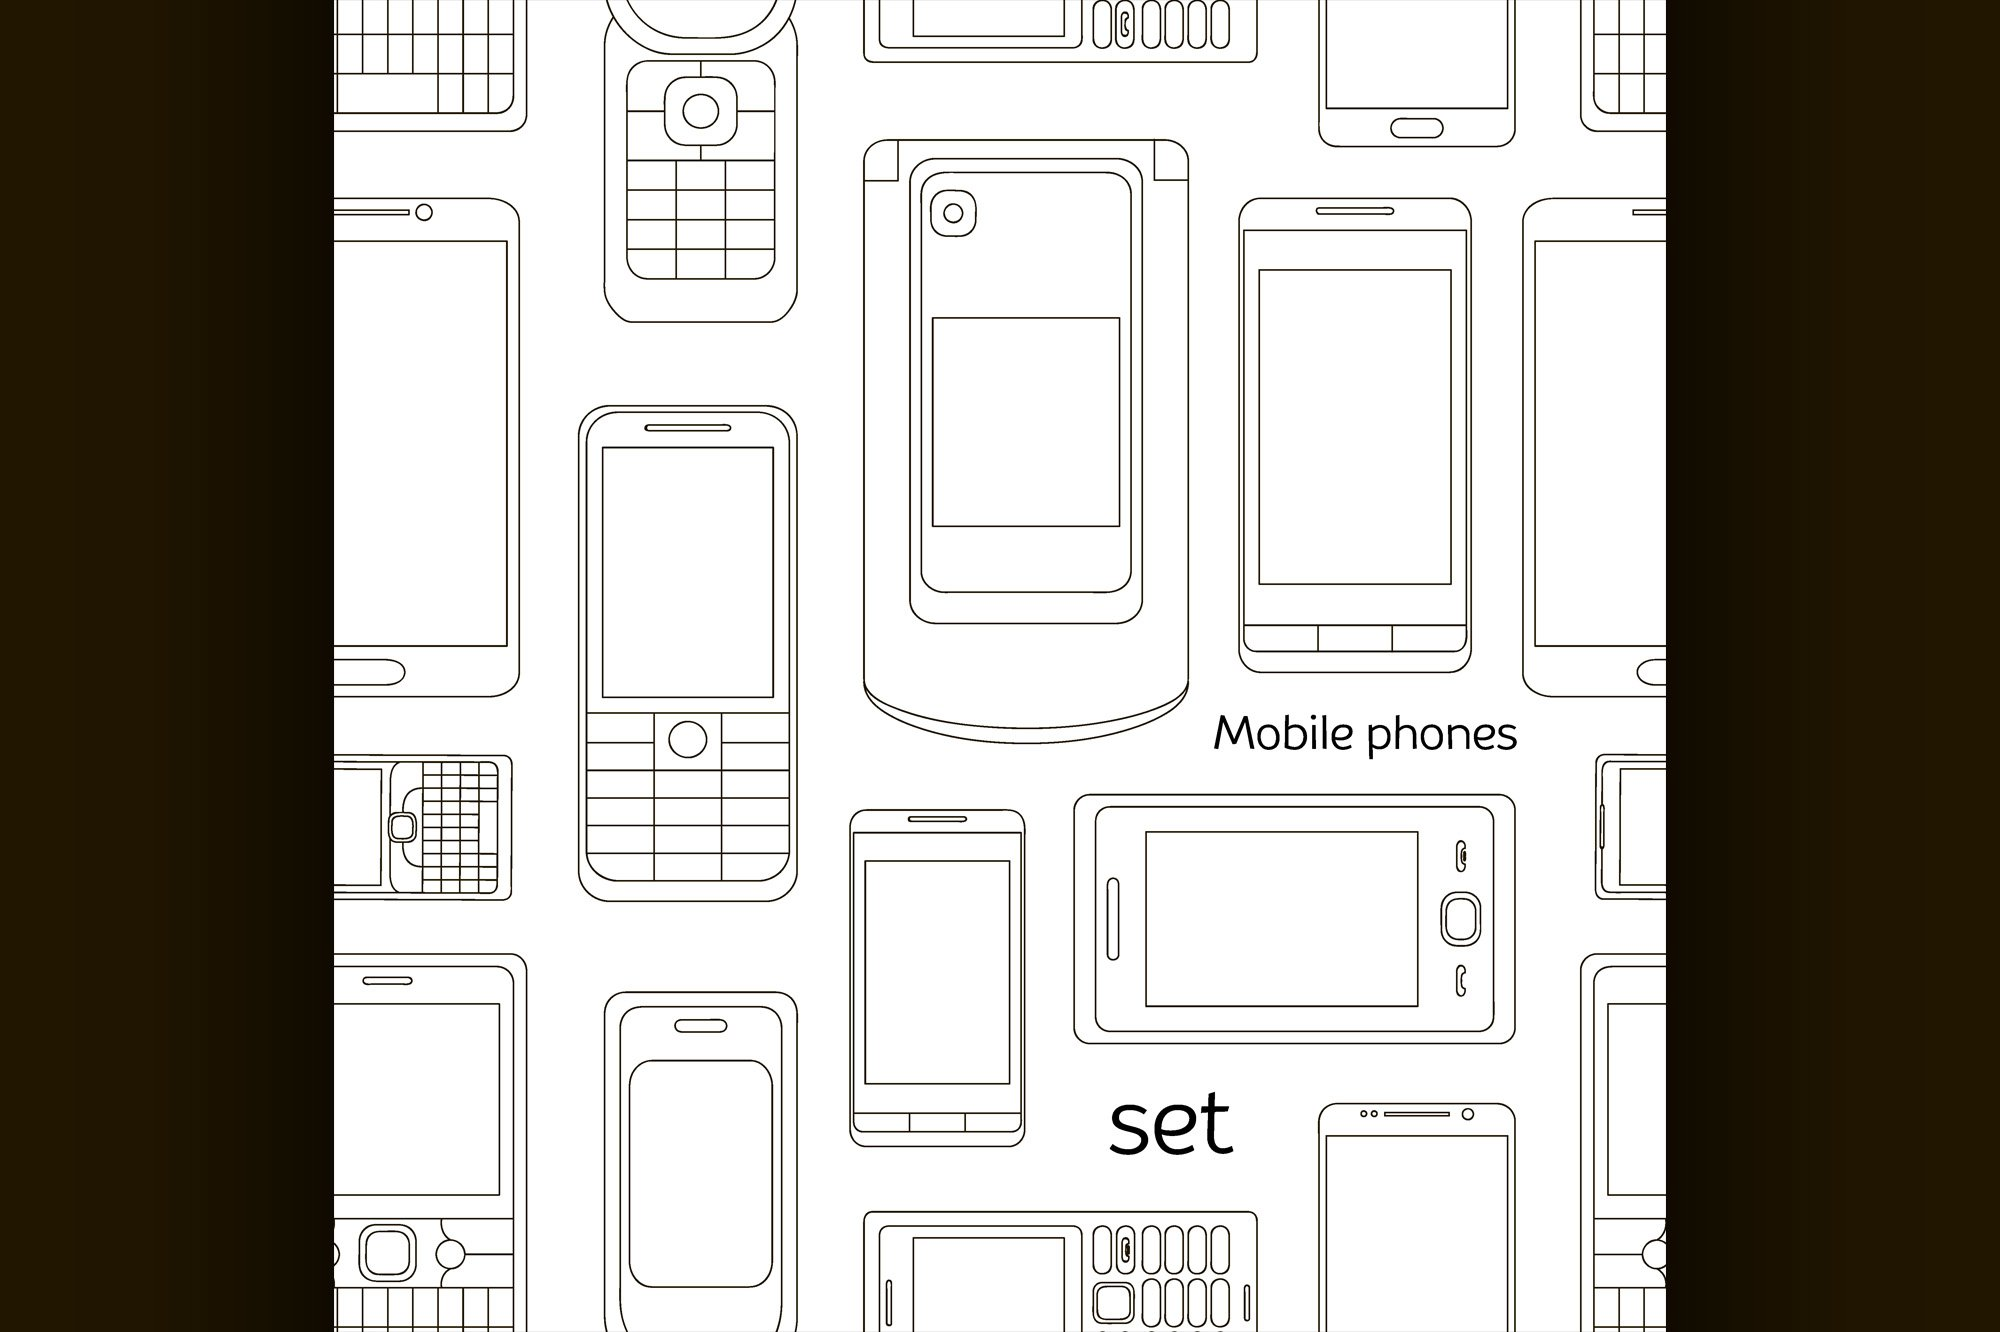 Mobile phones set pattern example image 1